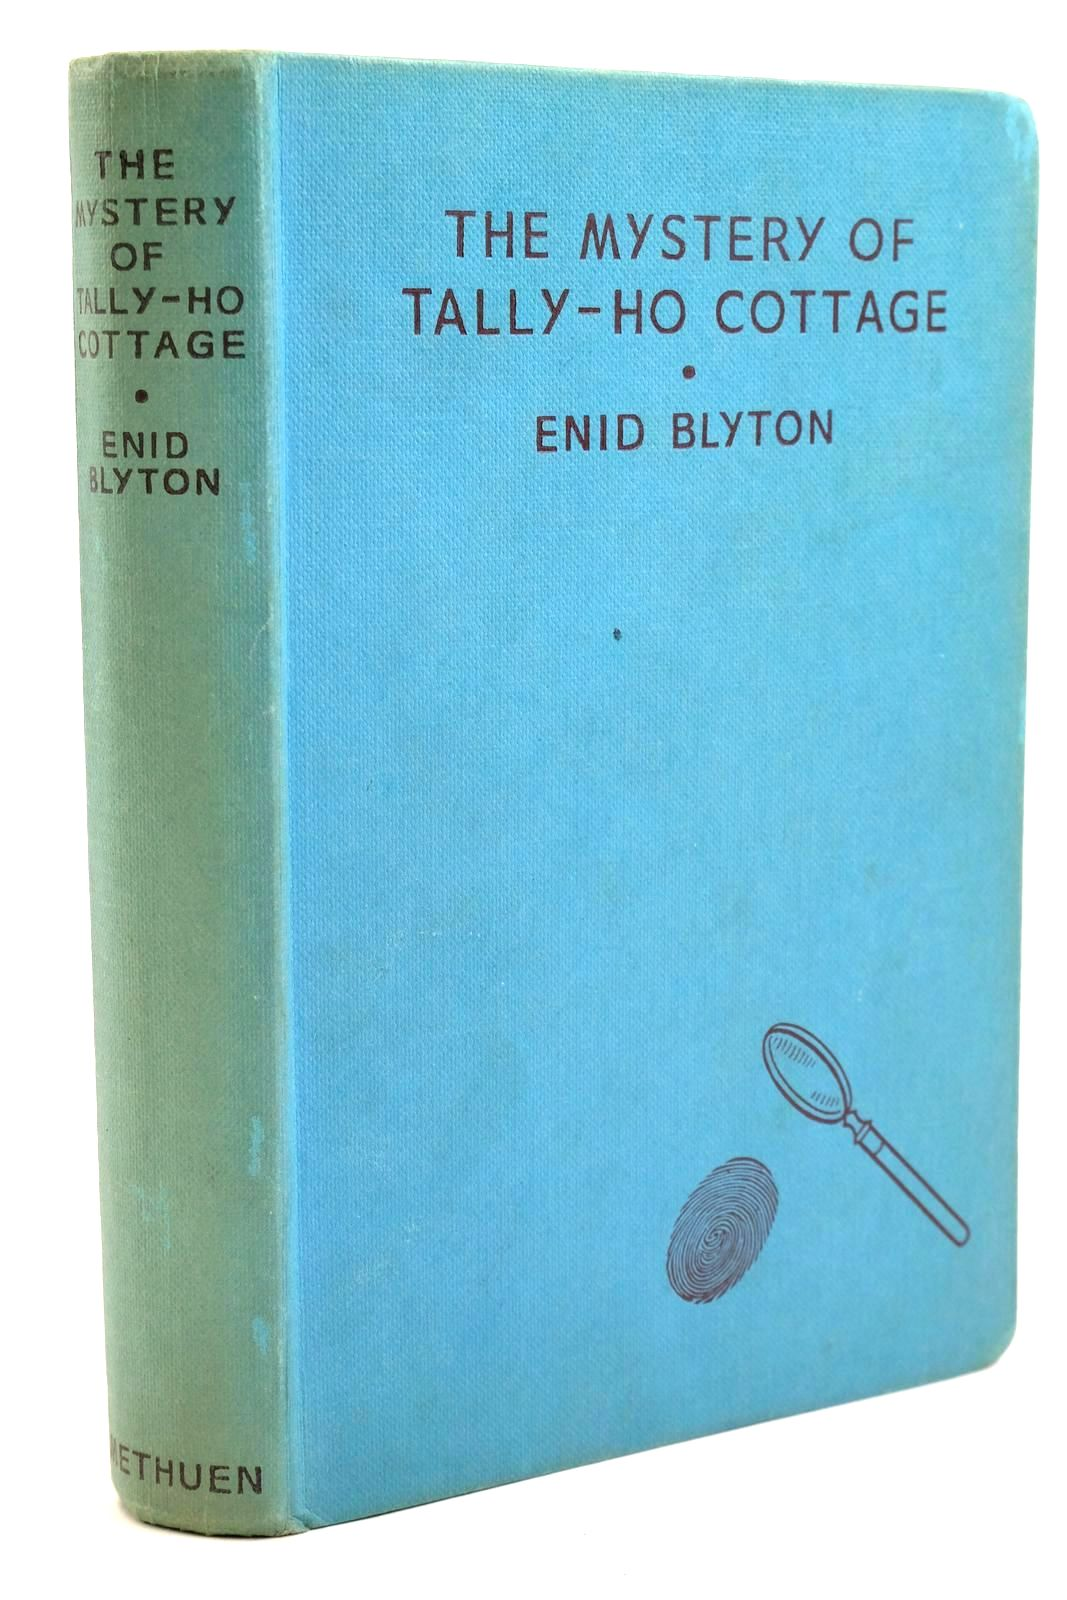 Photo of THE MYSTERY OF TALLY-HO COTTAGE written by Blyton, Enid illustrated by Evans, Treyer published by Methuen & Co. Ltd. (STOCK CODE: 1320750)  for sale by Stella & Rose's Books